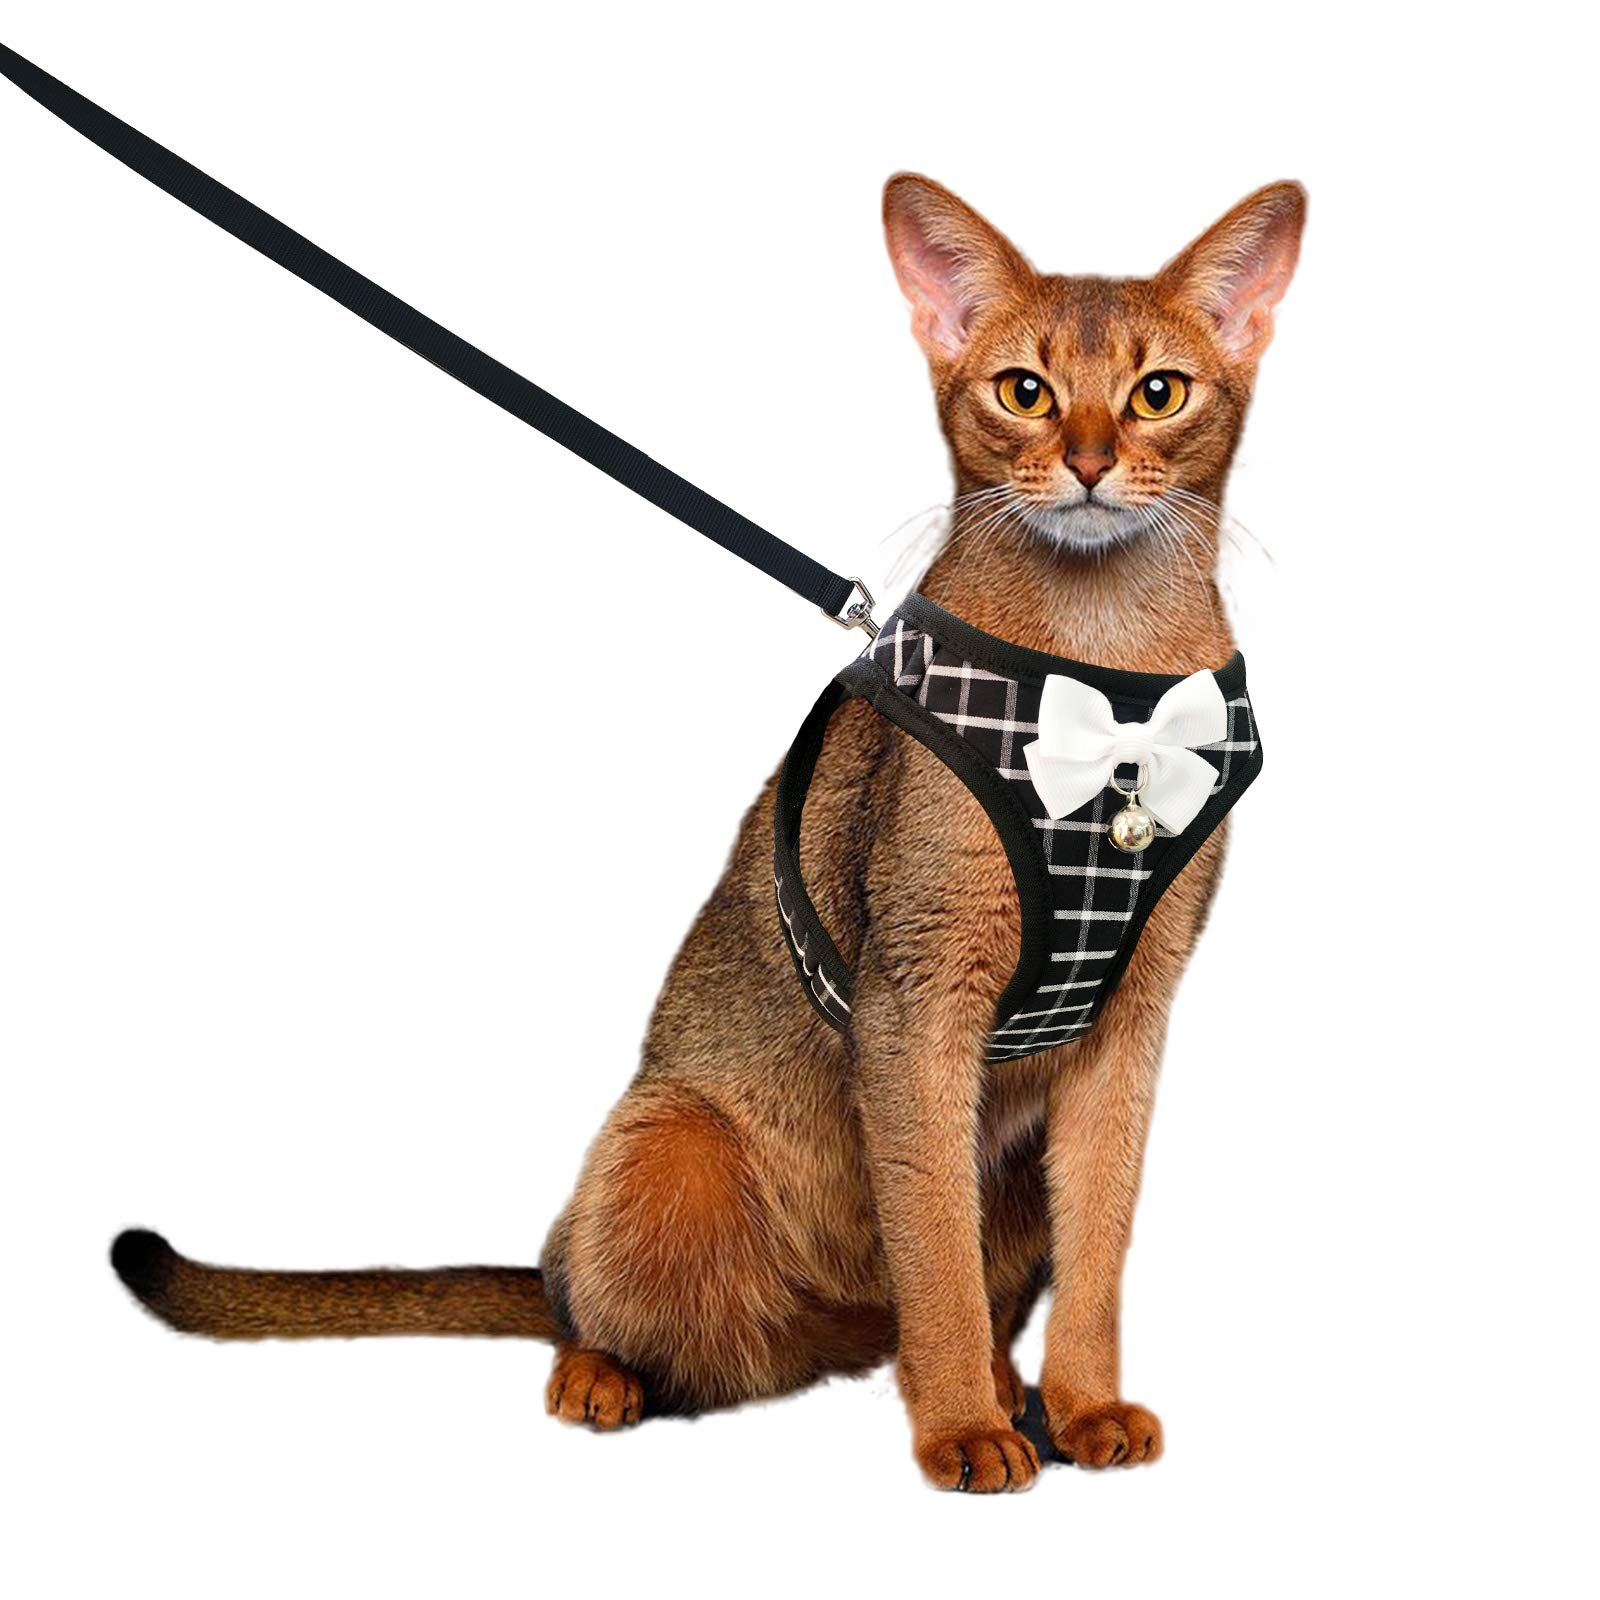 Aumuca Cat Harness and Leash for Walking Escape Proof with Bell and Bow-Knot Decoration,Adjustable Soft Kittens Vest for Cats,Cat Walking Harness,Step-in Comfortable Outdoor Vest(Black,XS)